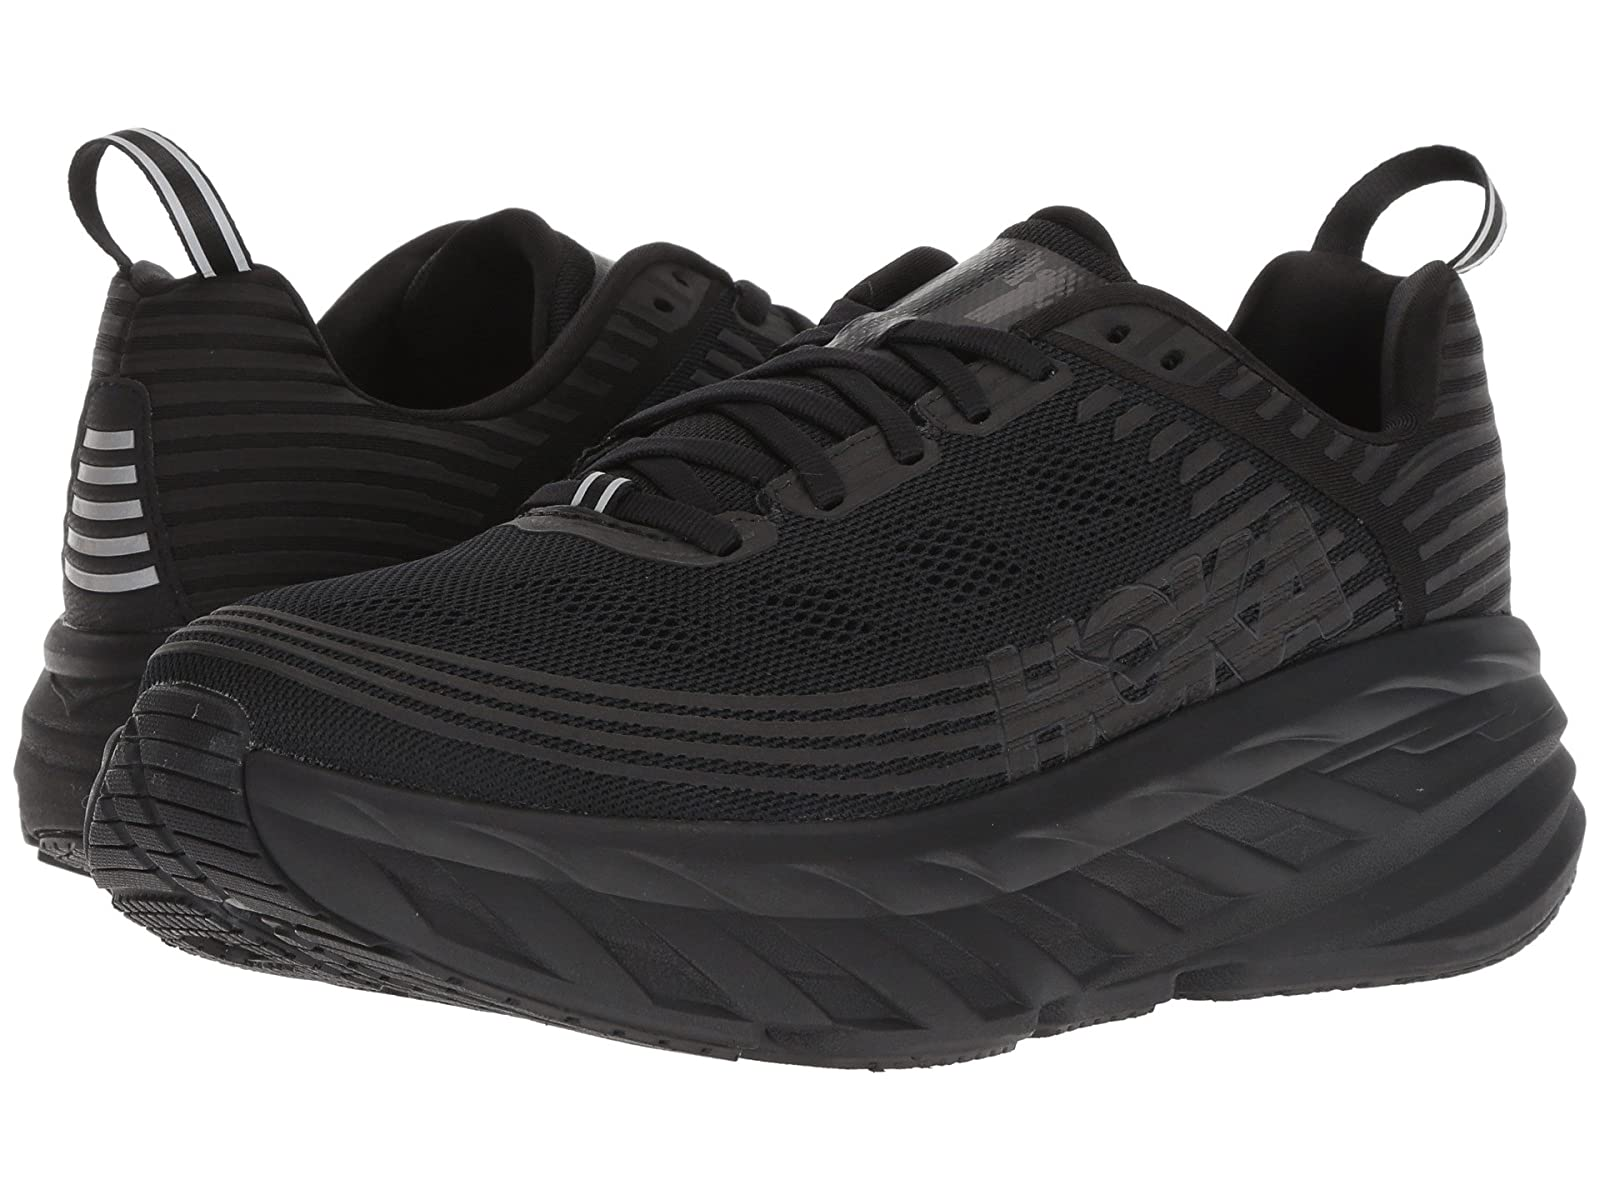 Hoka One One Bondi 6Atmospheric grades have affordable shoes